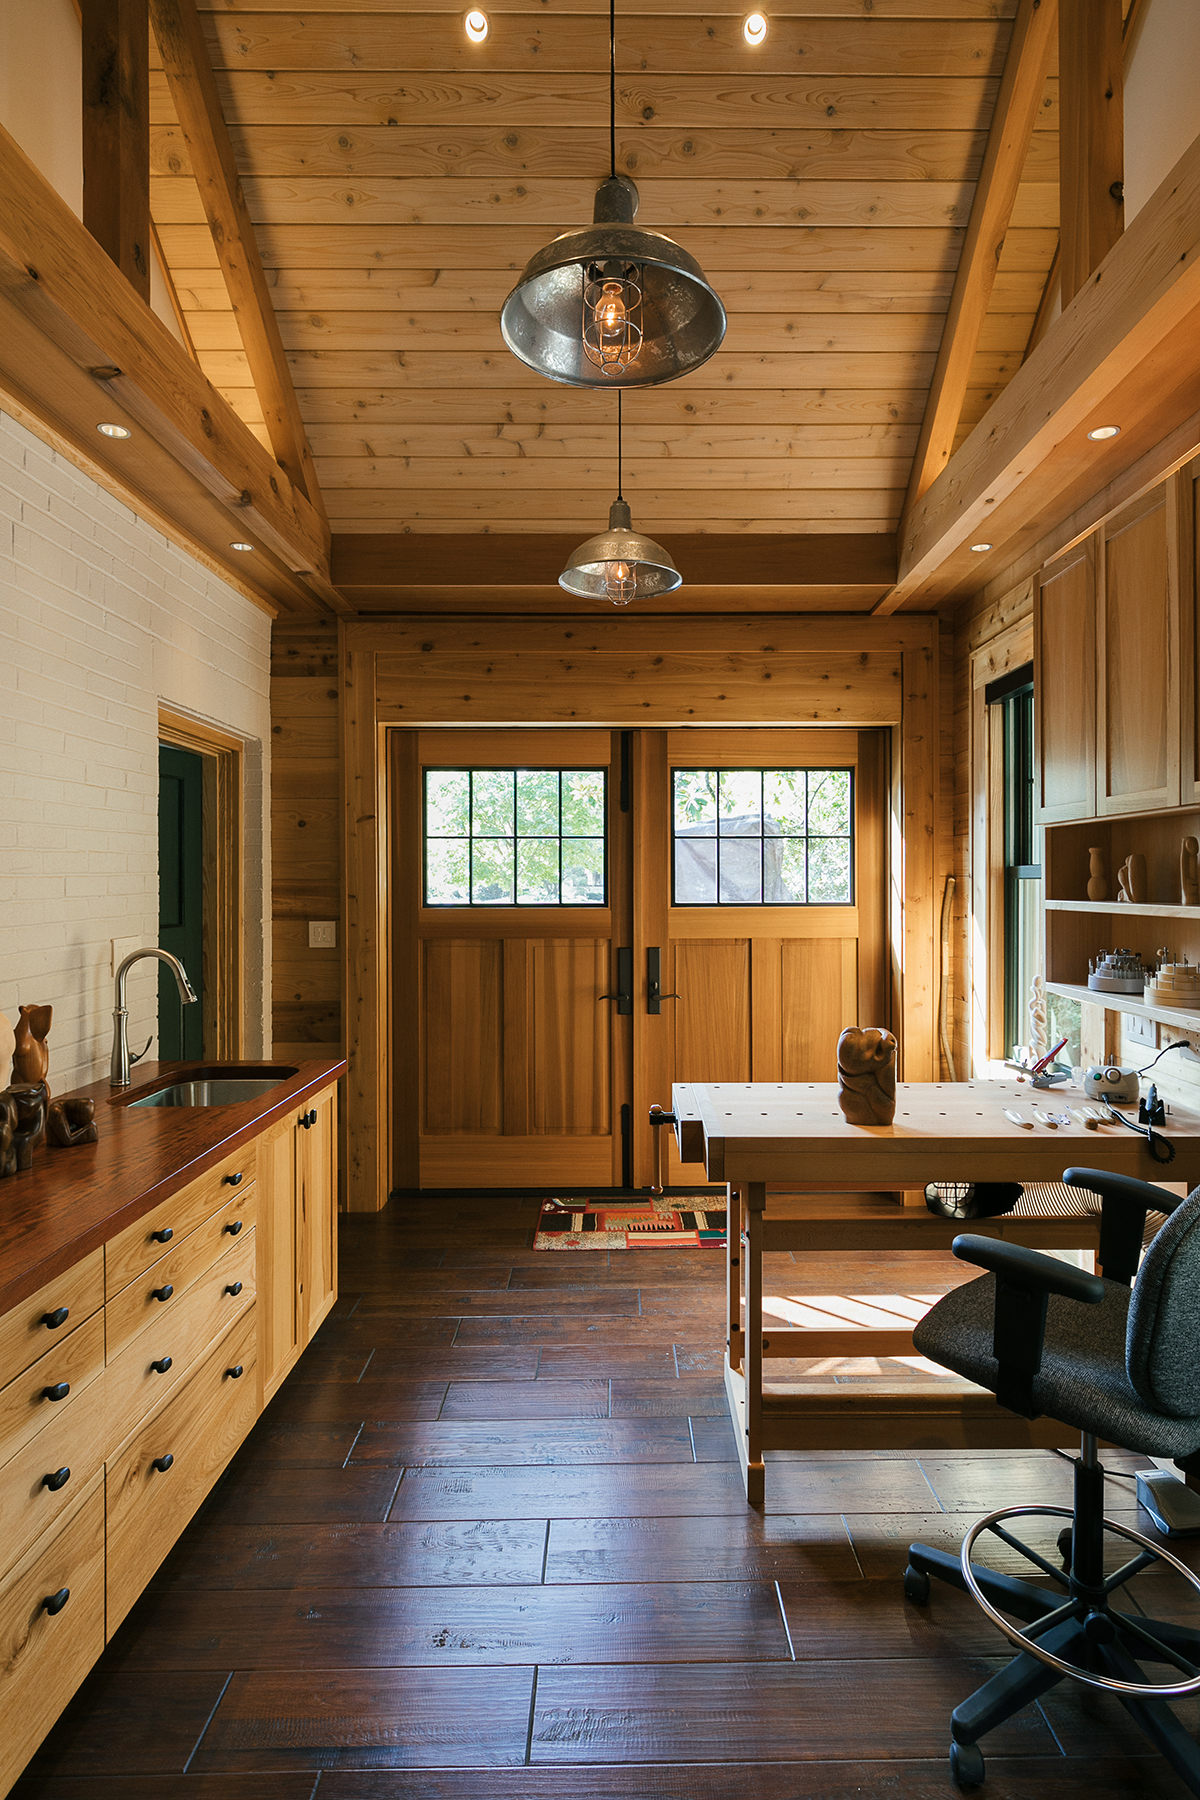 The Carving Studio: A Woodworker's Paradise